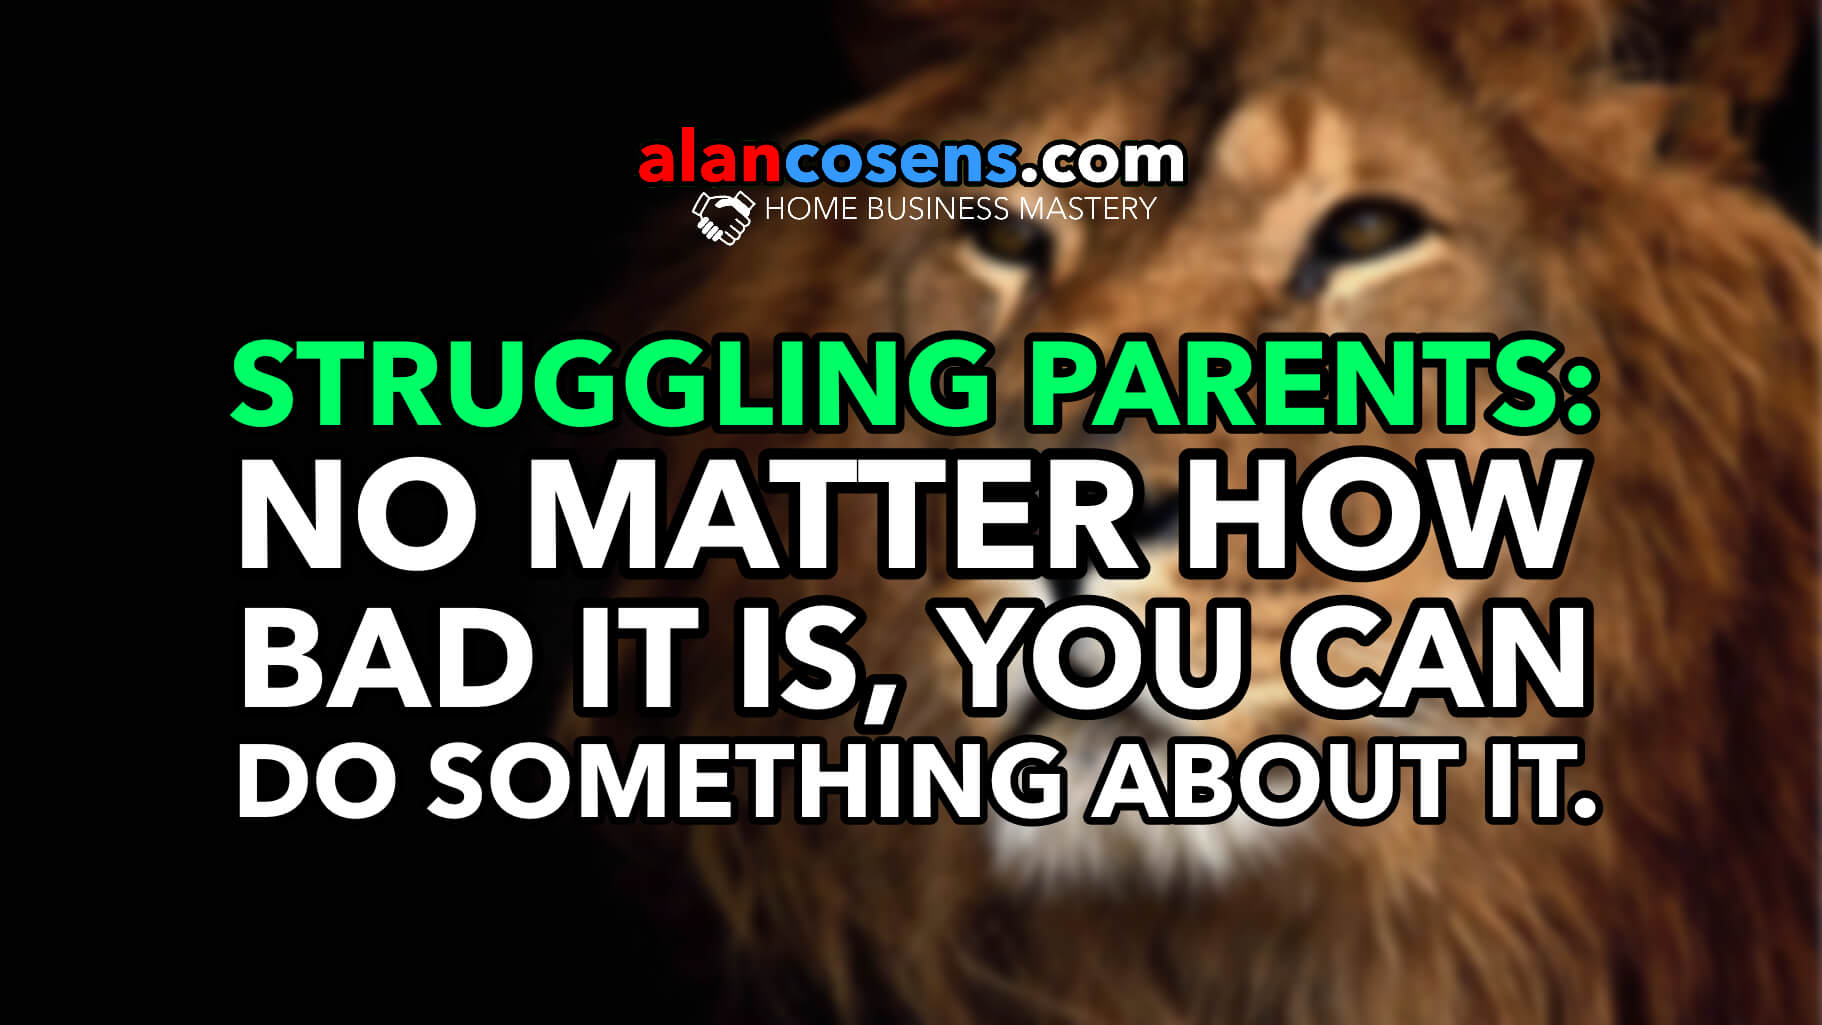 Struggling Parents: No Matter How Bad It Is, Something Can Be Done About It